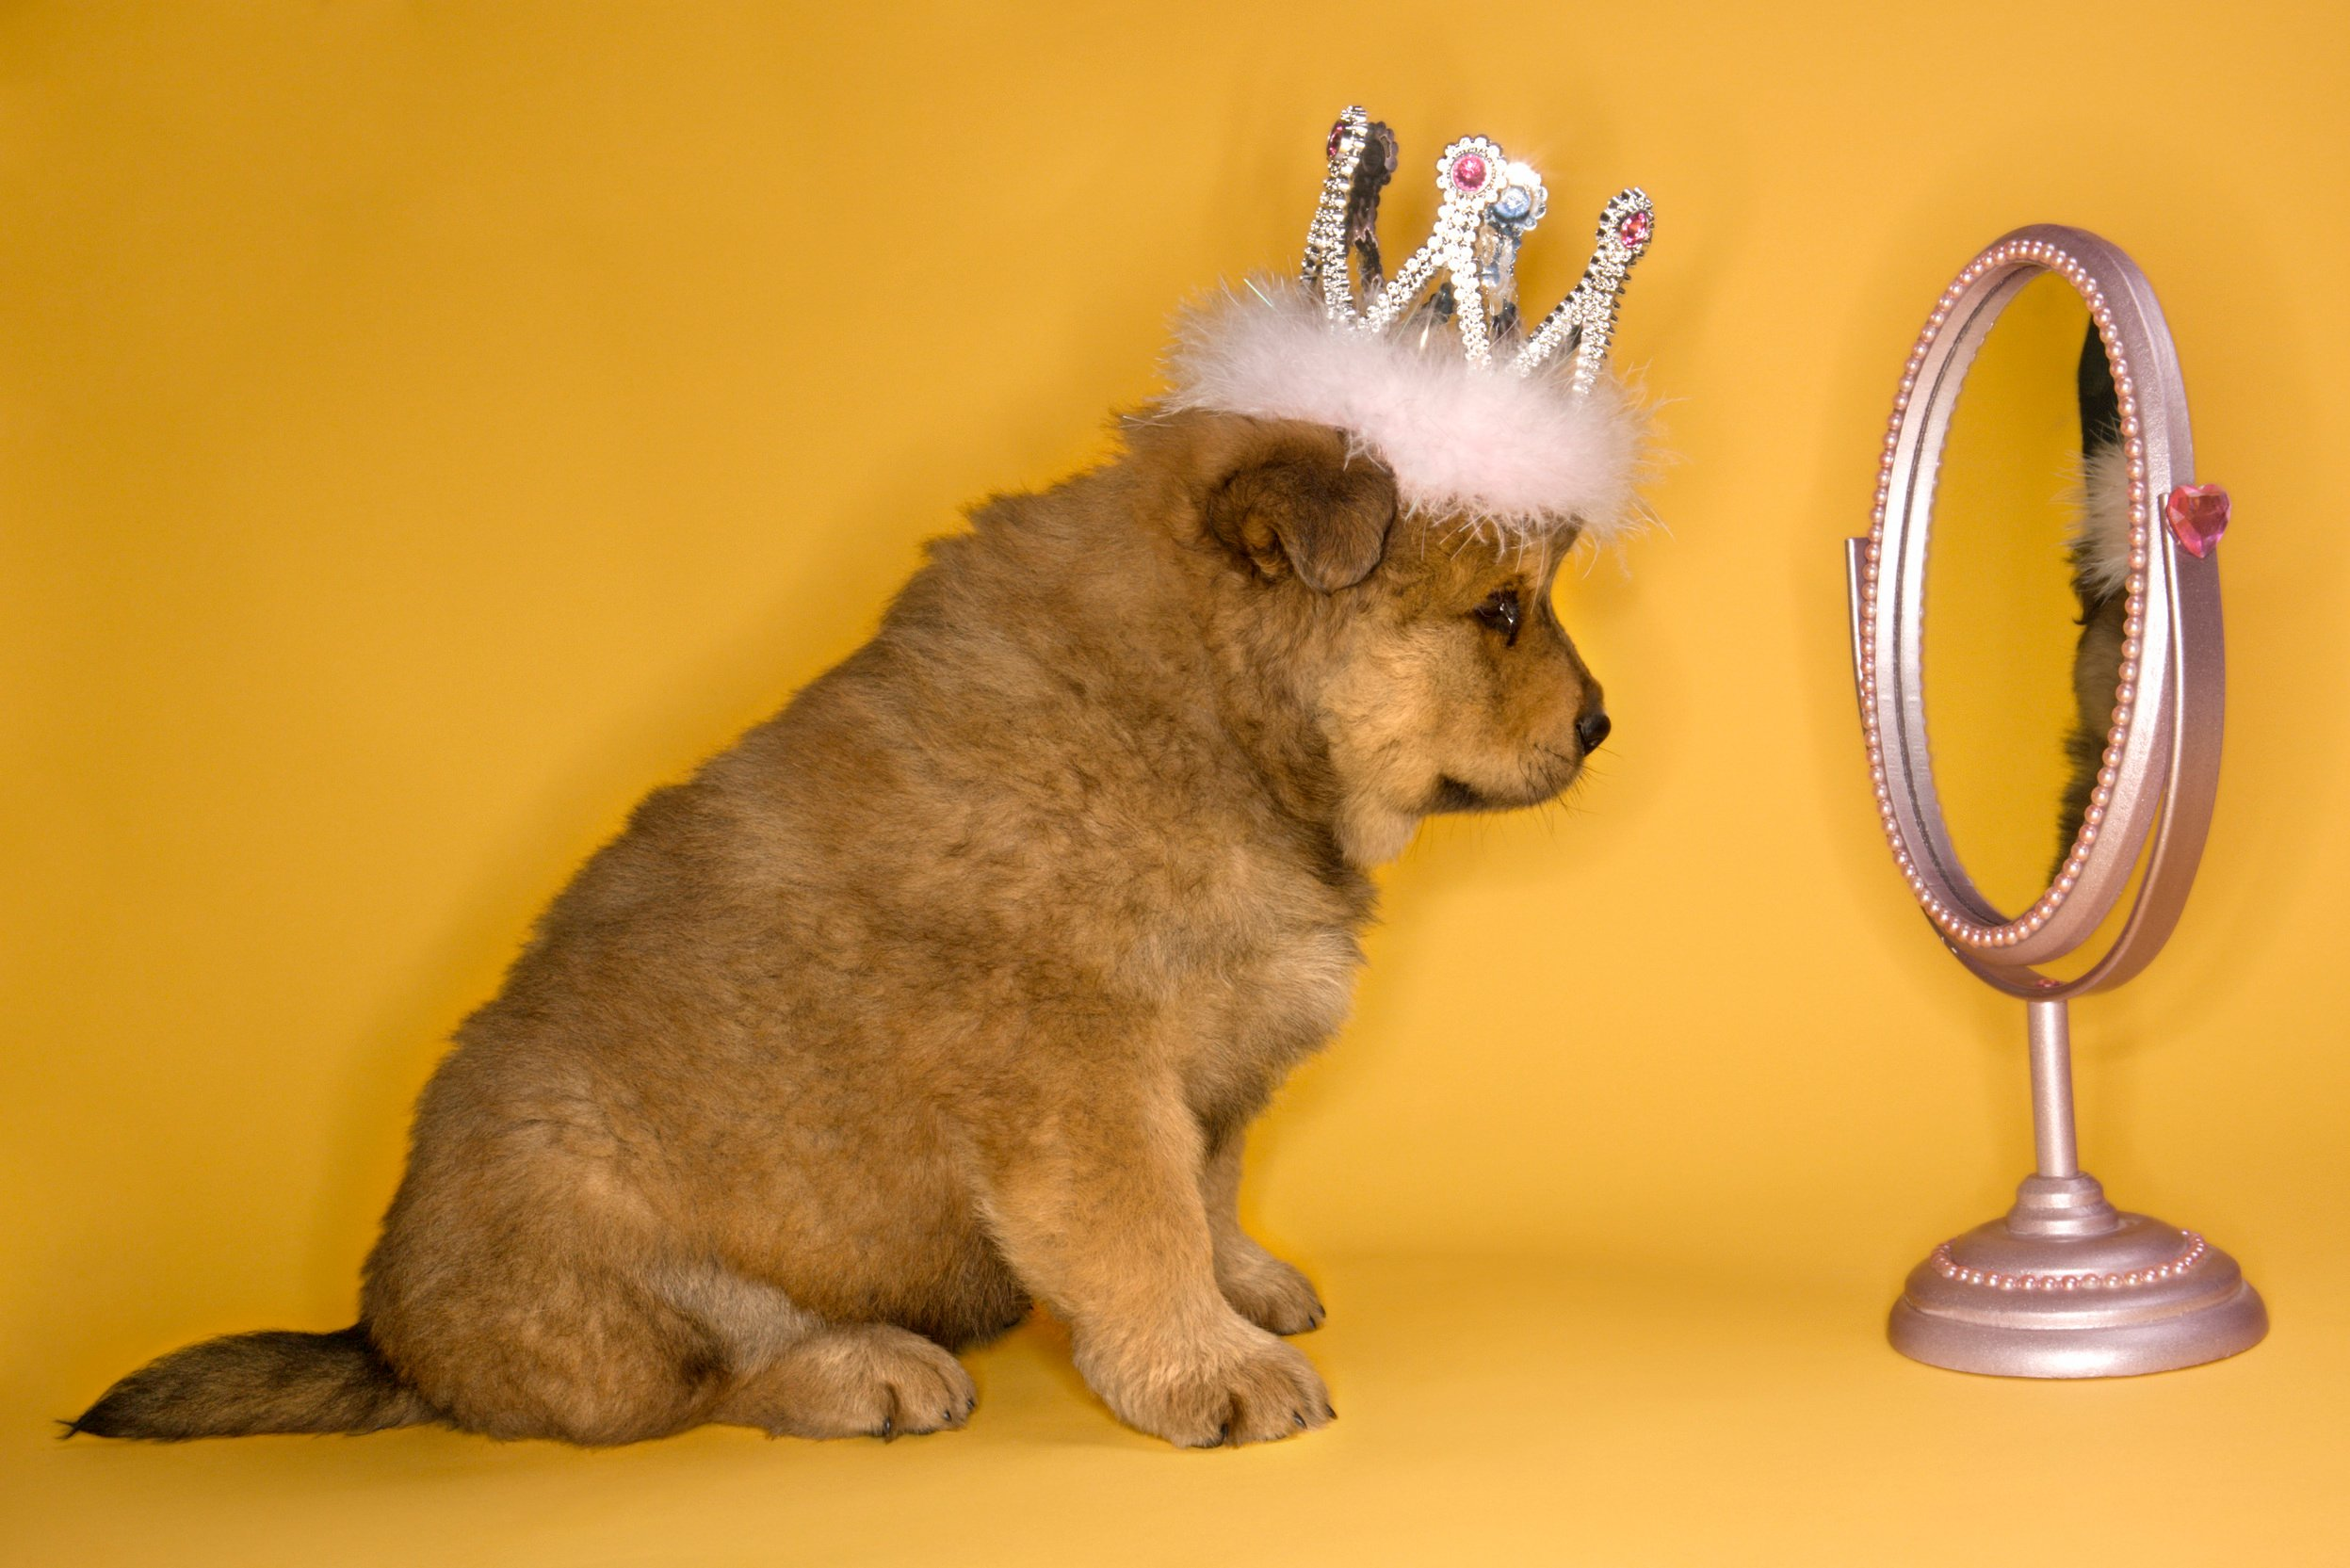 puppy-in-mirror-was-i-raised-by-narcissists